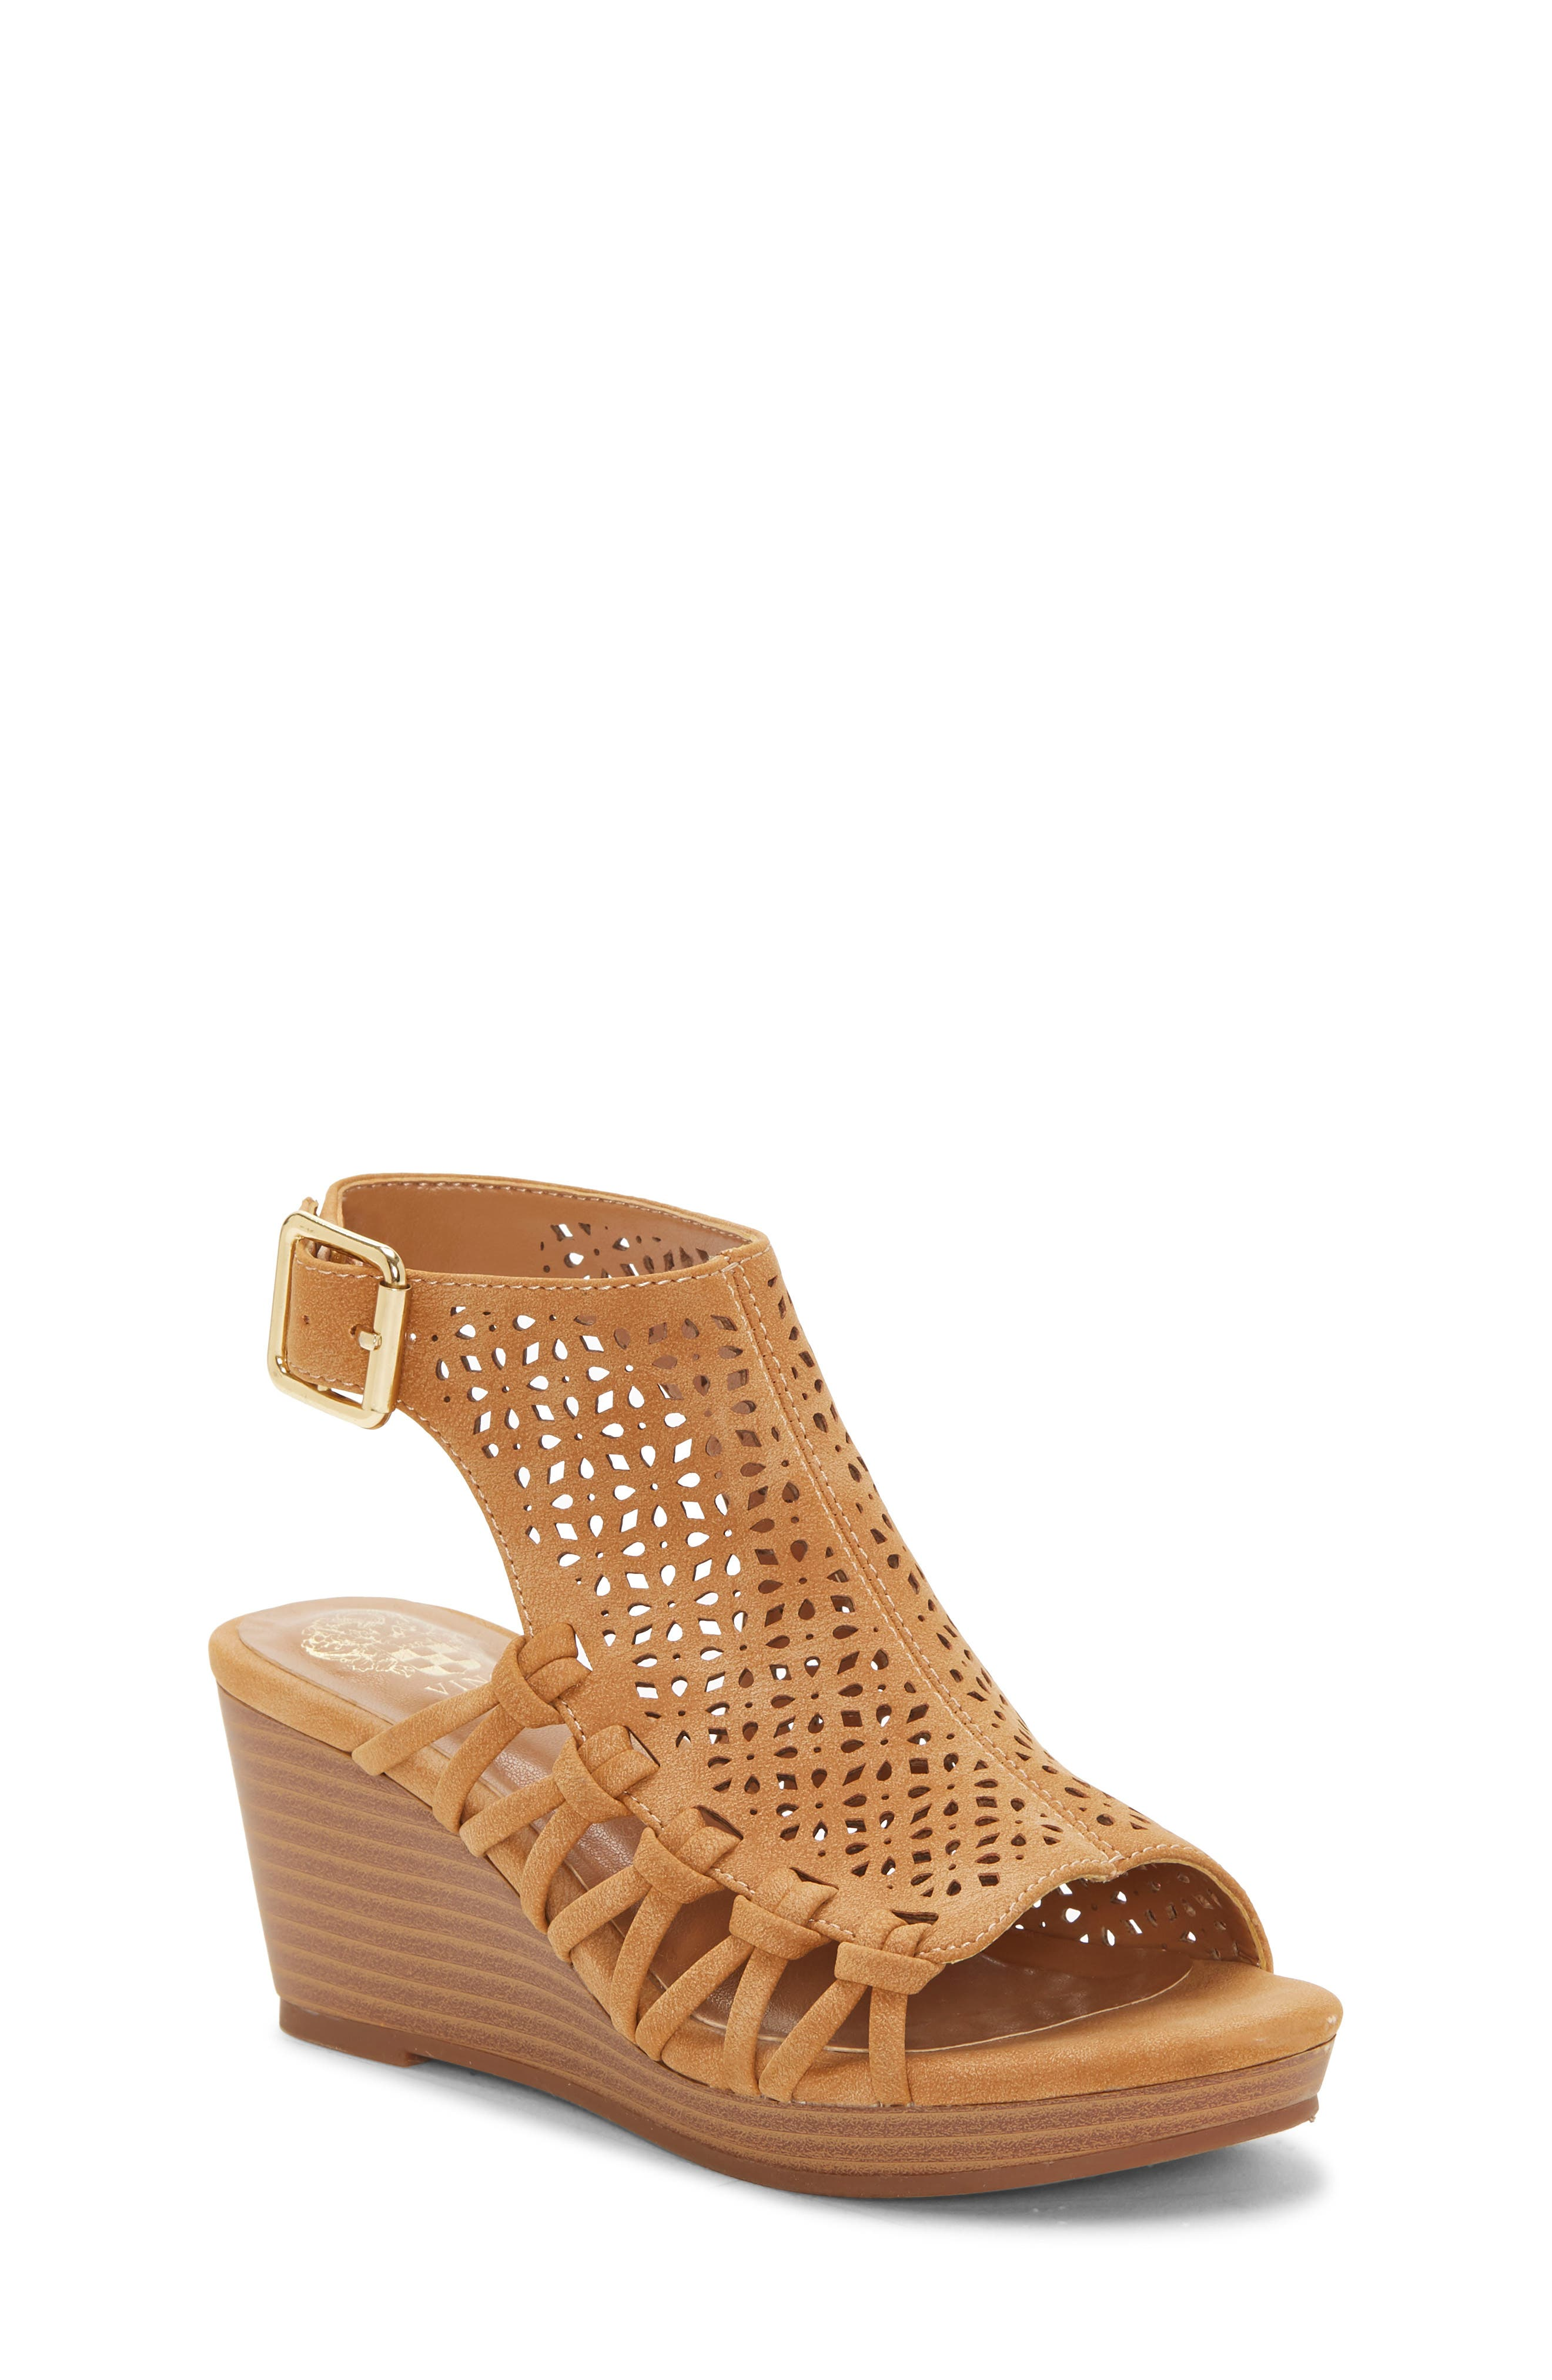 520b8d09e1 Big Girls' Vince Camuto Shoes (Sizes 3.5-7) | Nordstrom